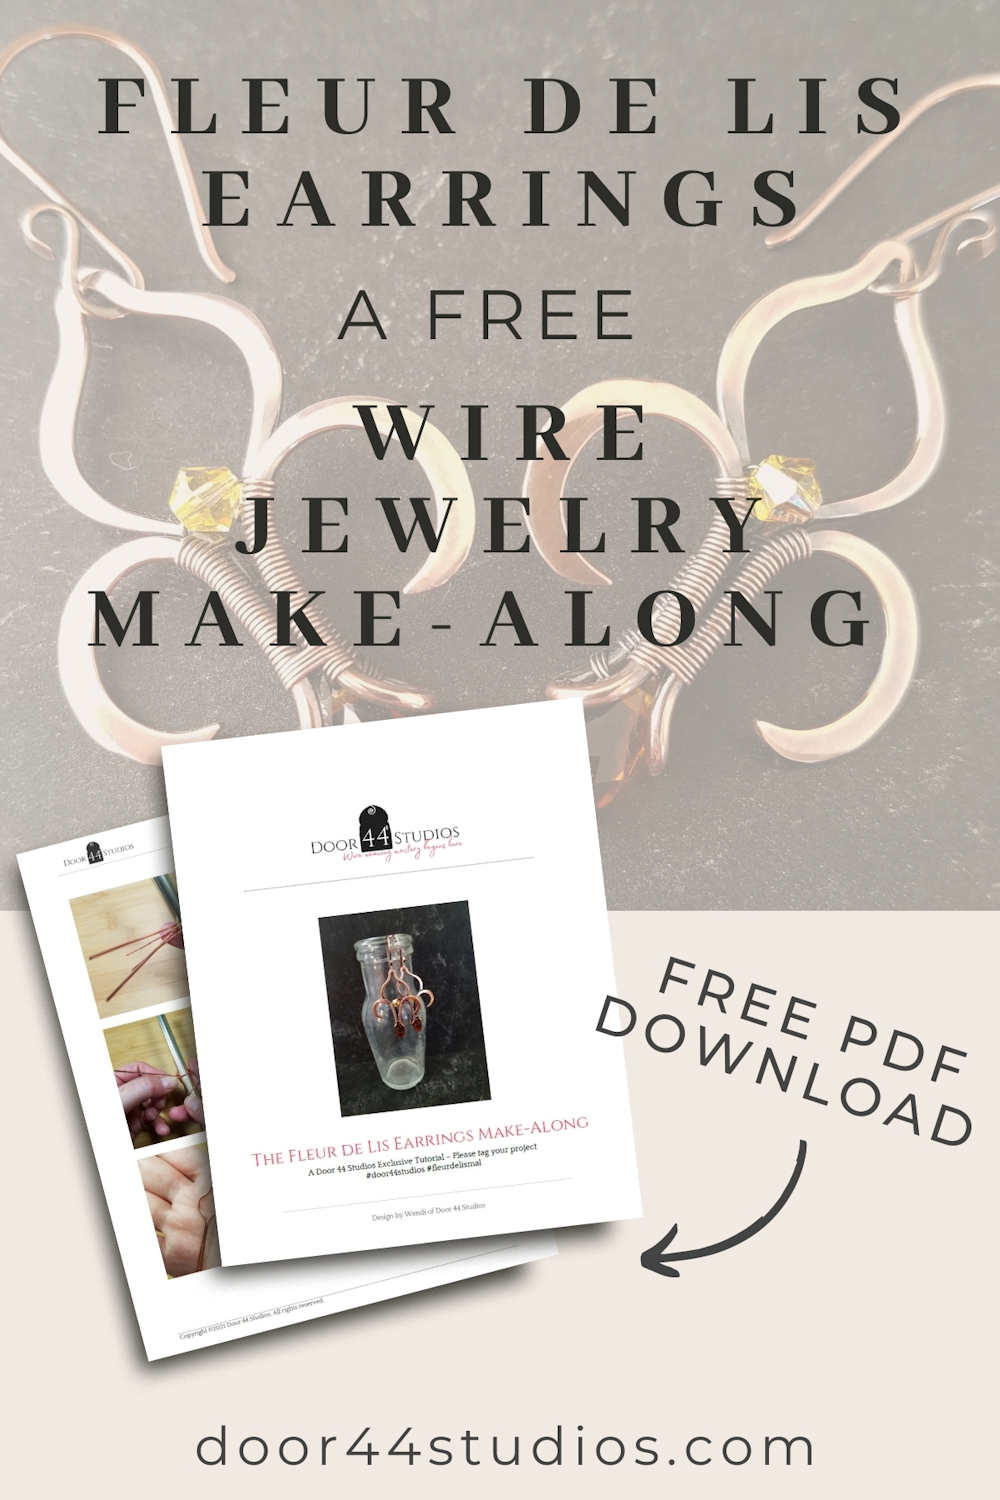 Learn to make the Fleur-de-Lis earrings with this video-guided wire jewelry make-along, which includes a free downloadable PDF tutorial.